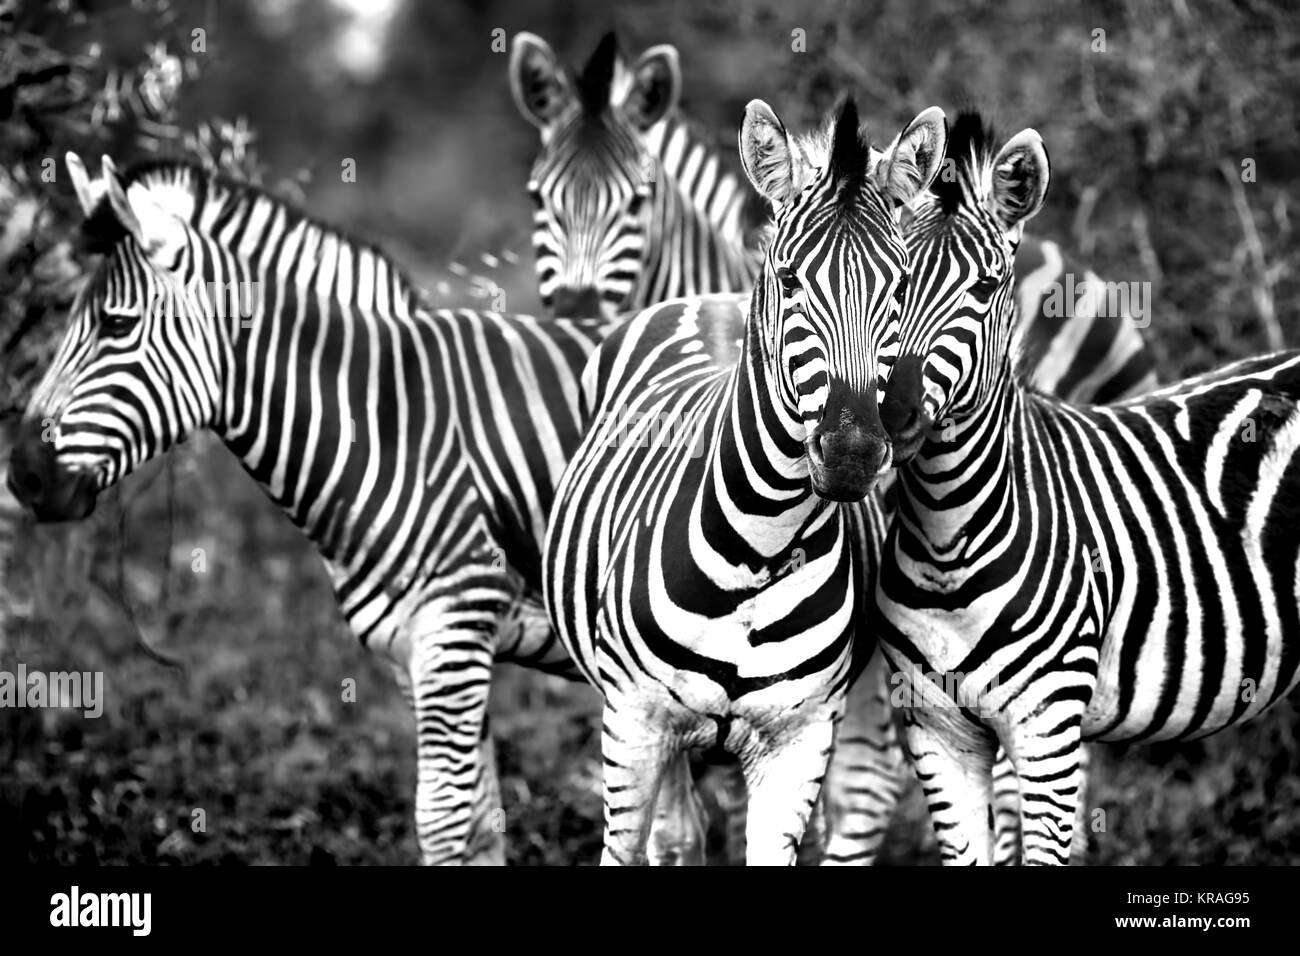 Family of a wild African zebras - Stock Image